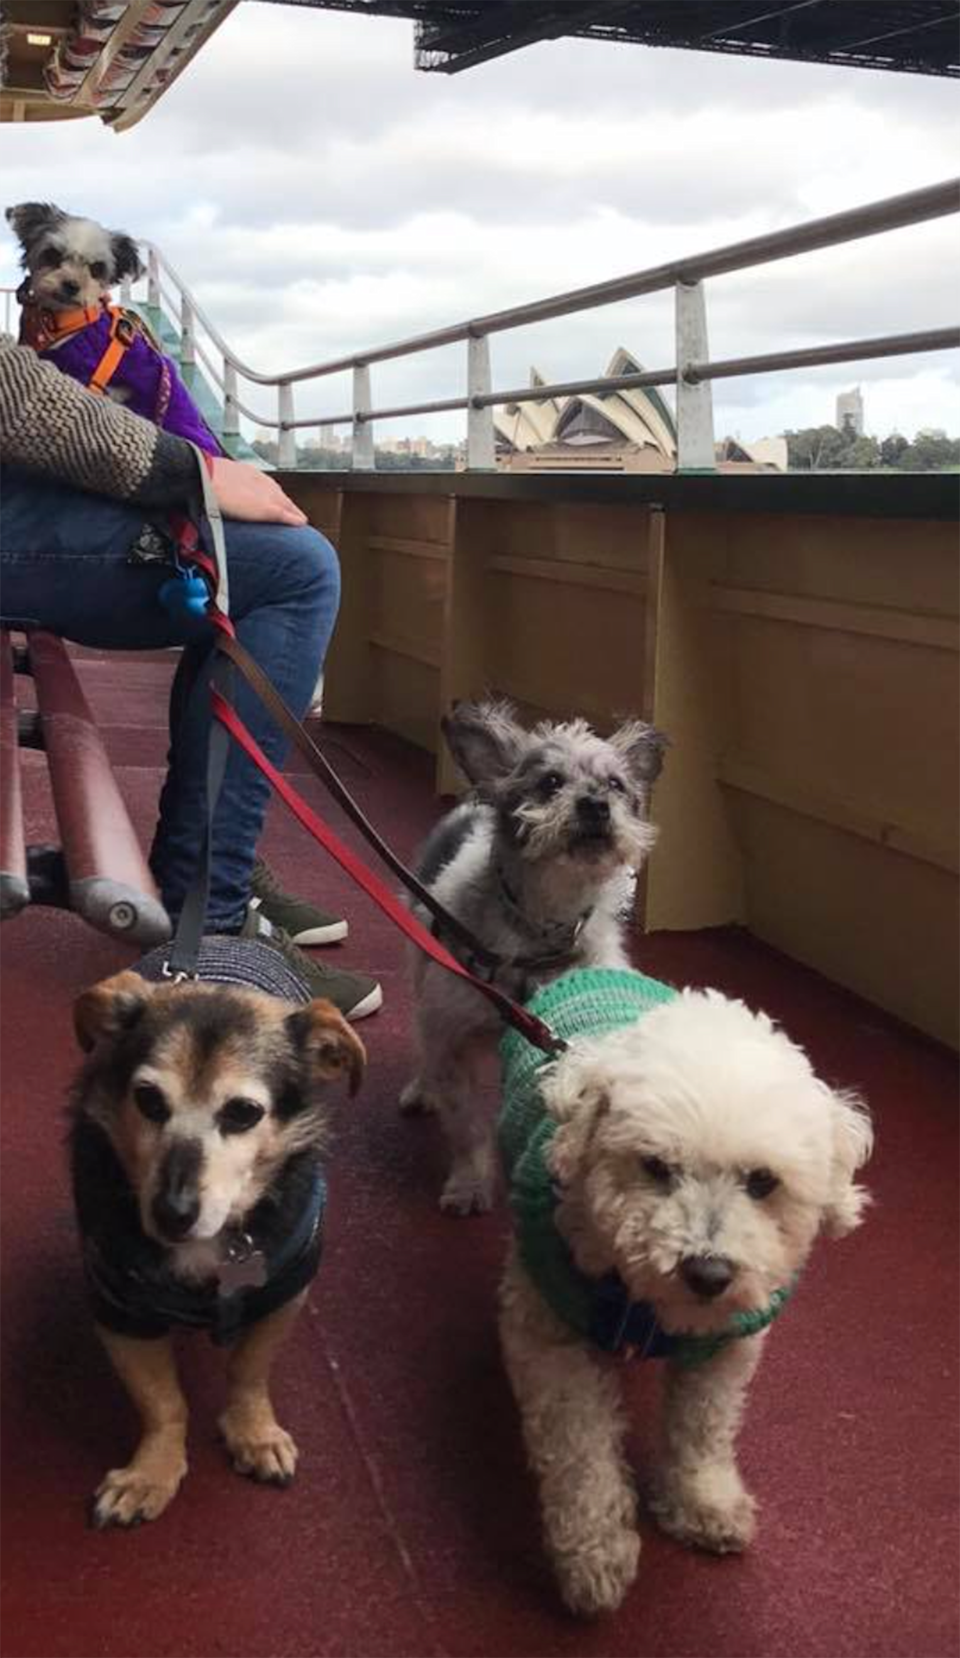 A person holds four dogs on leashes on a Sydney ferry, with the Sydney Opera House in the background.